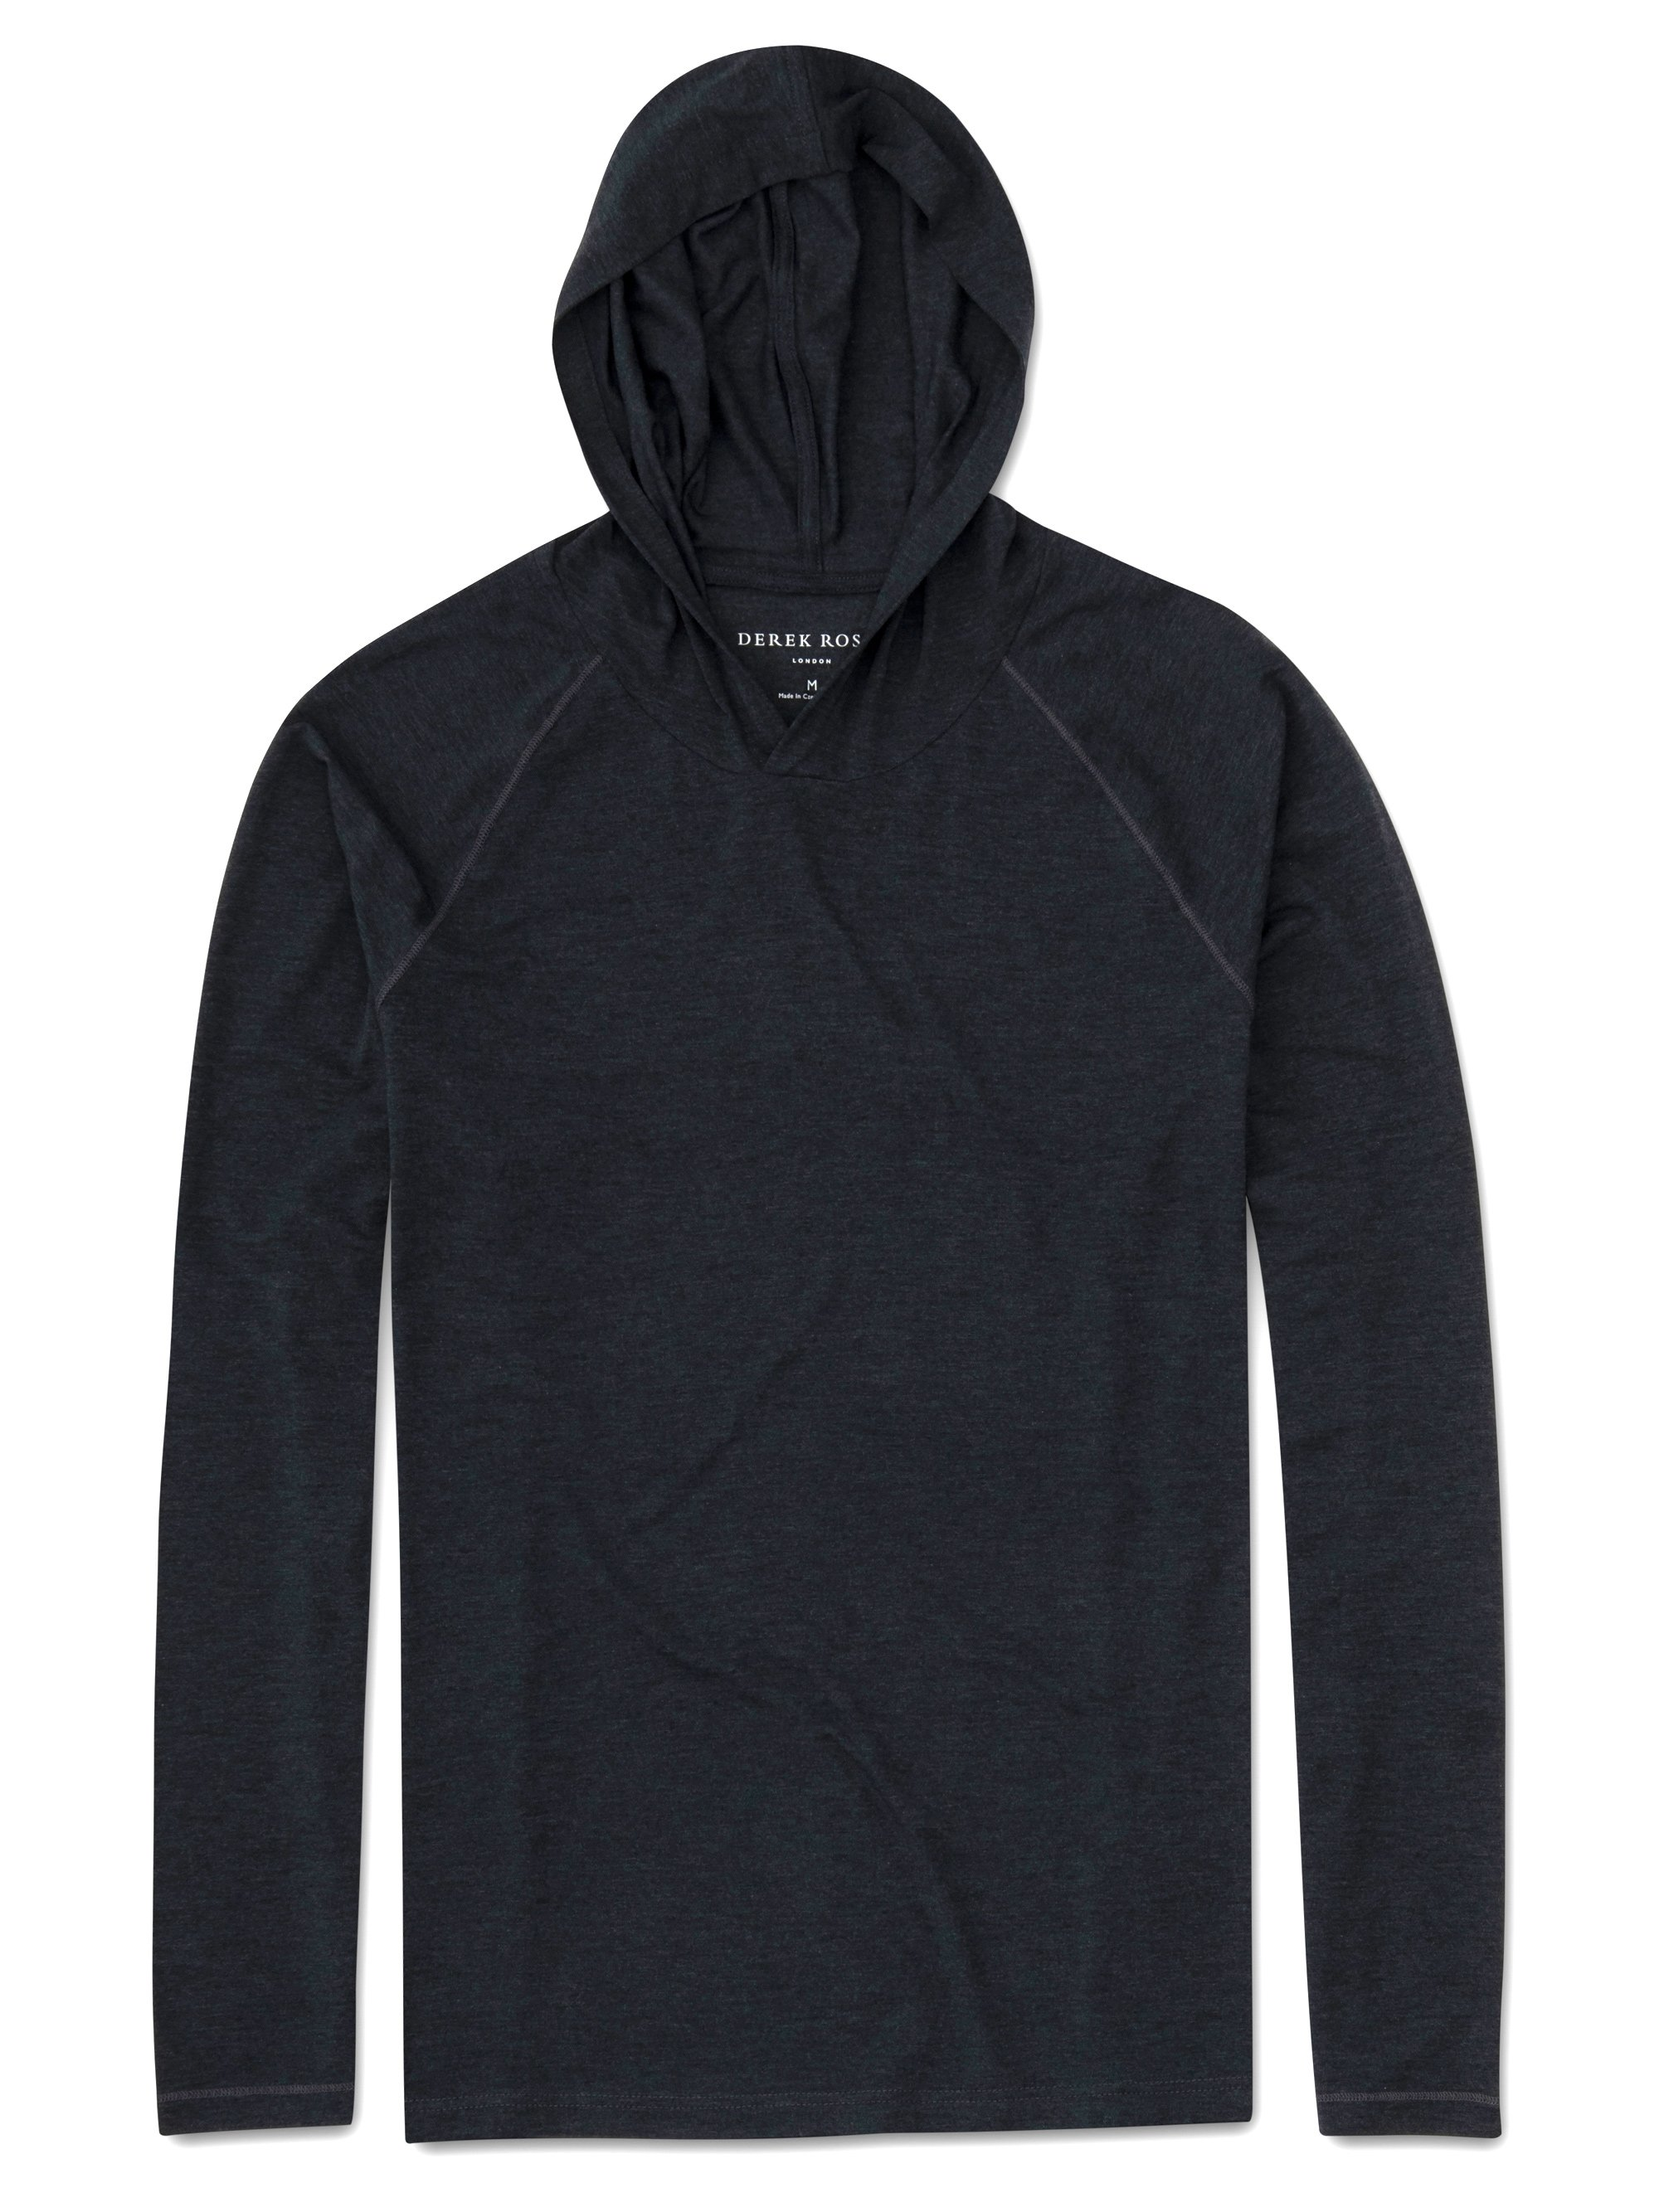 Men's Jersey Pullover Hoodie Marlowe Micro Modal Stretch Anthracite